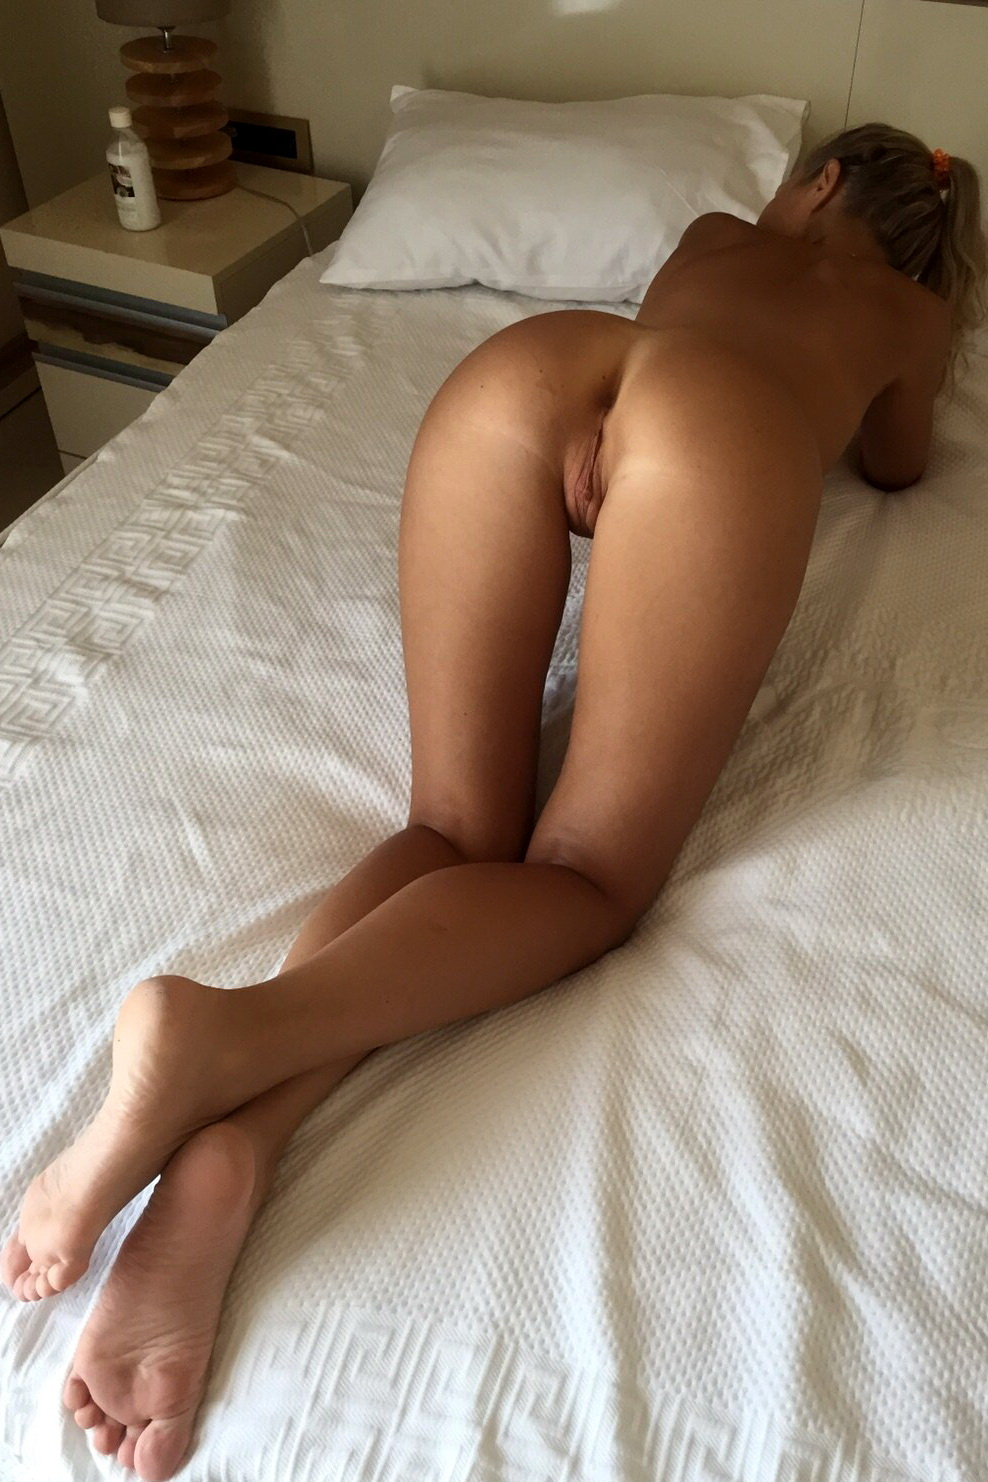 Girl bending over bed nude